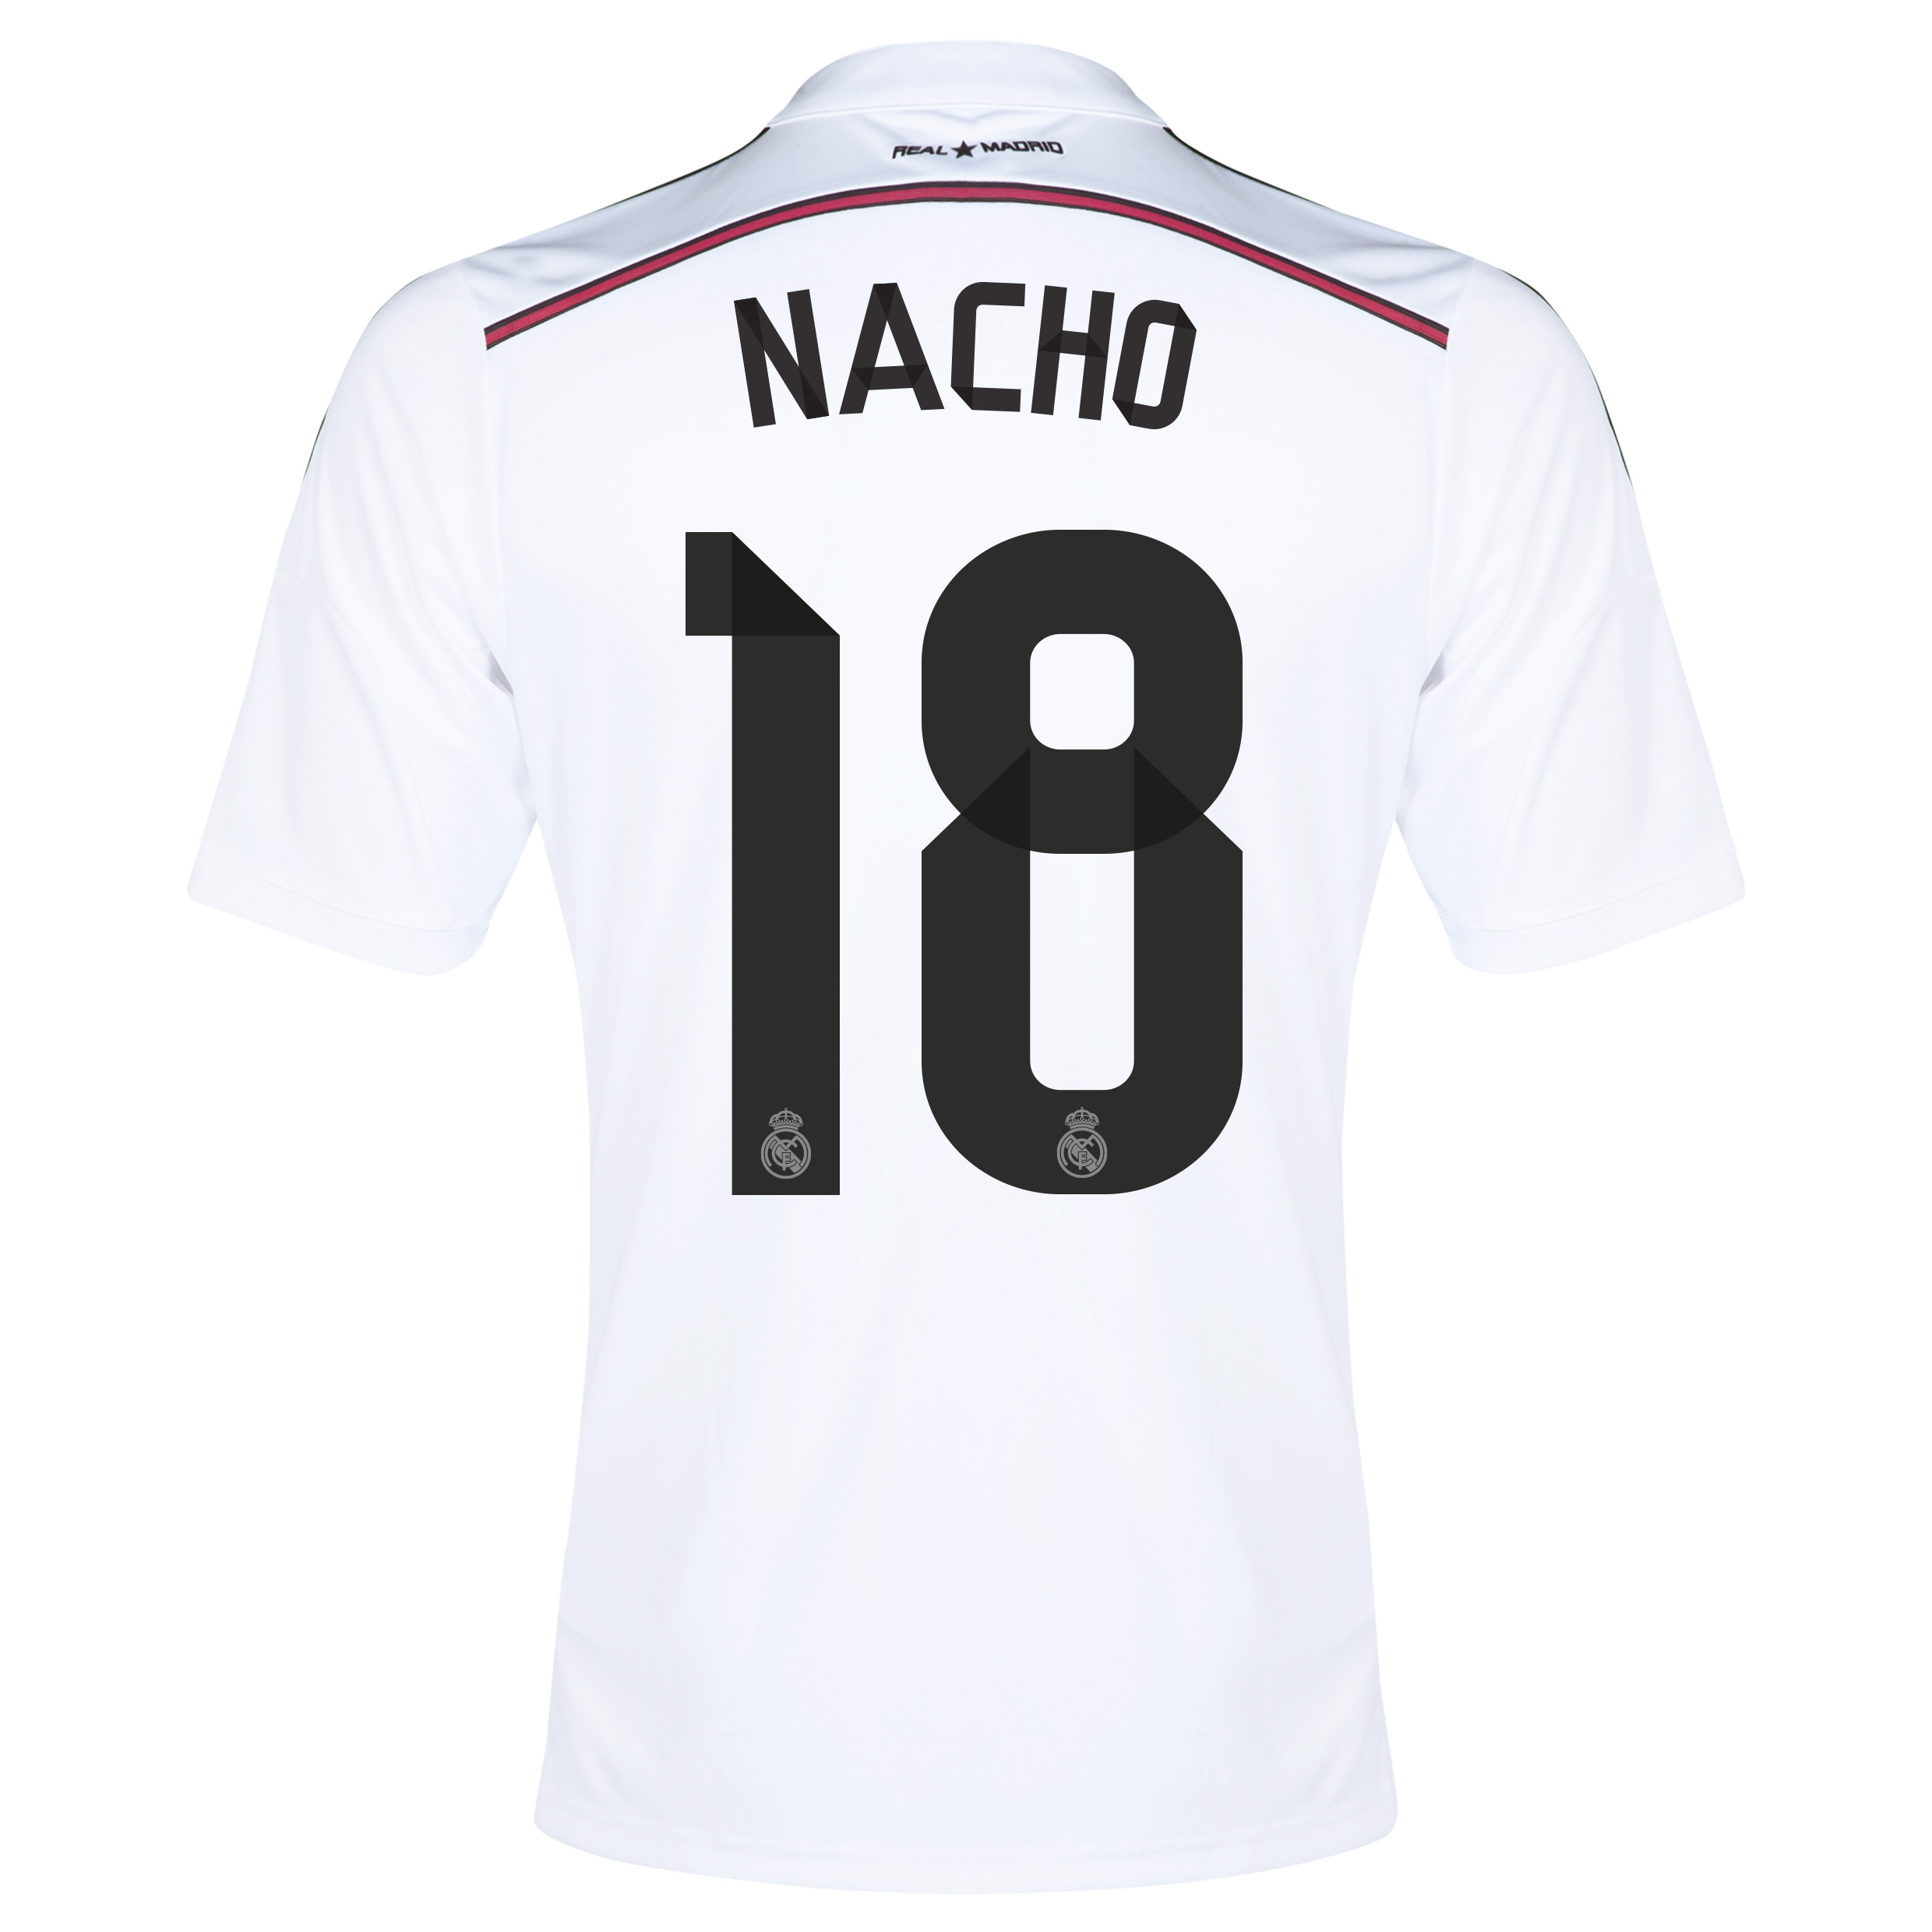 Real Madrid Home Shirt 2014/15 with Nacho 18 printing